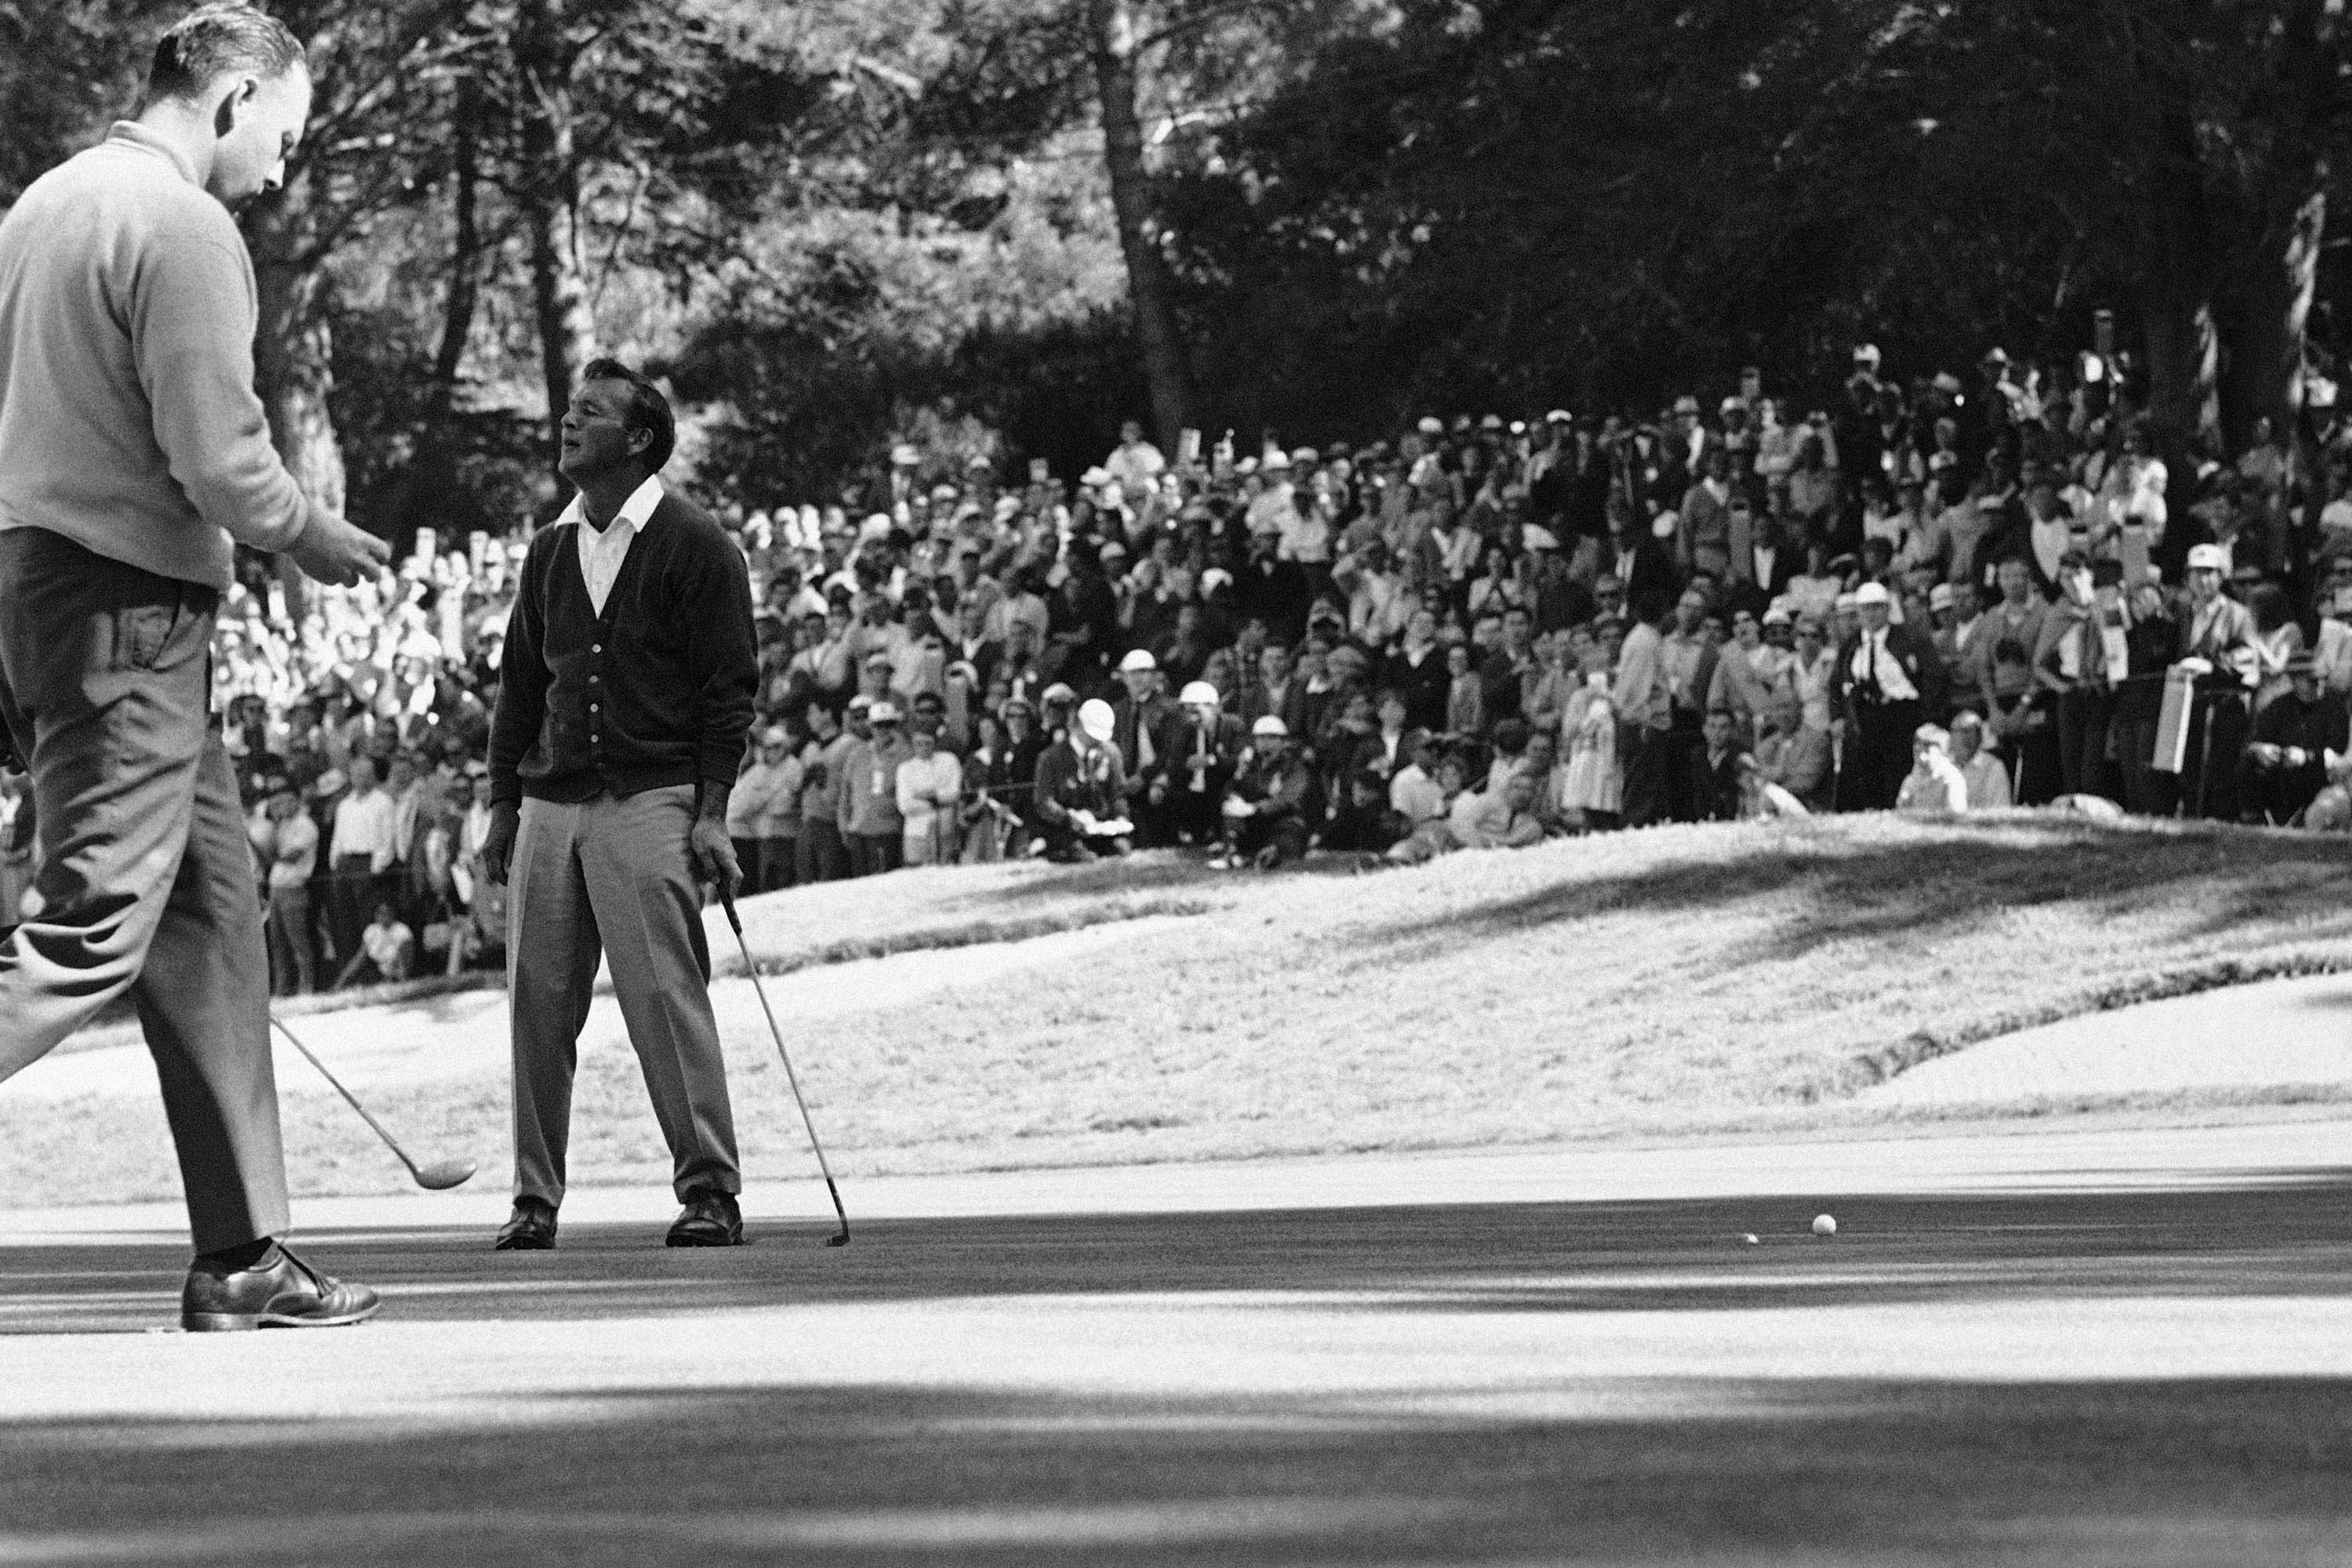 4. 1966: Arnie reverses the charge